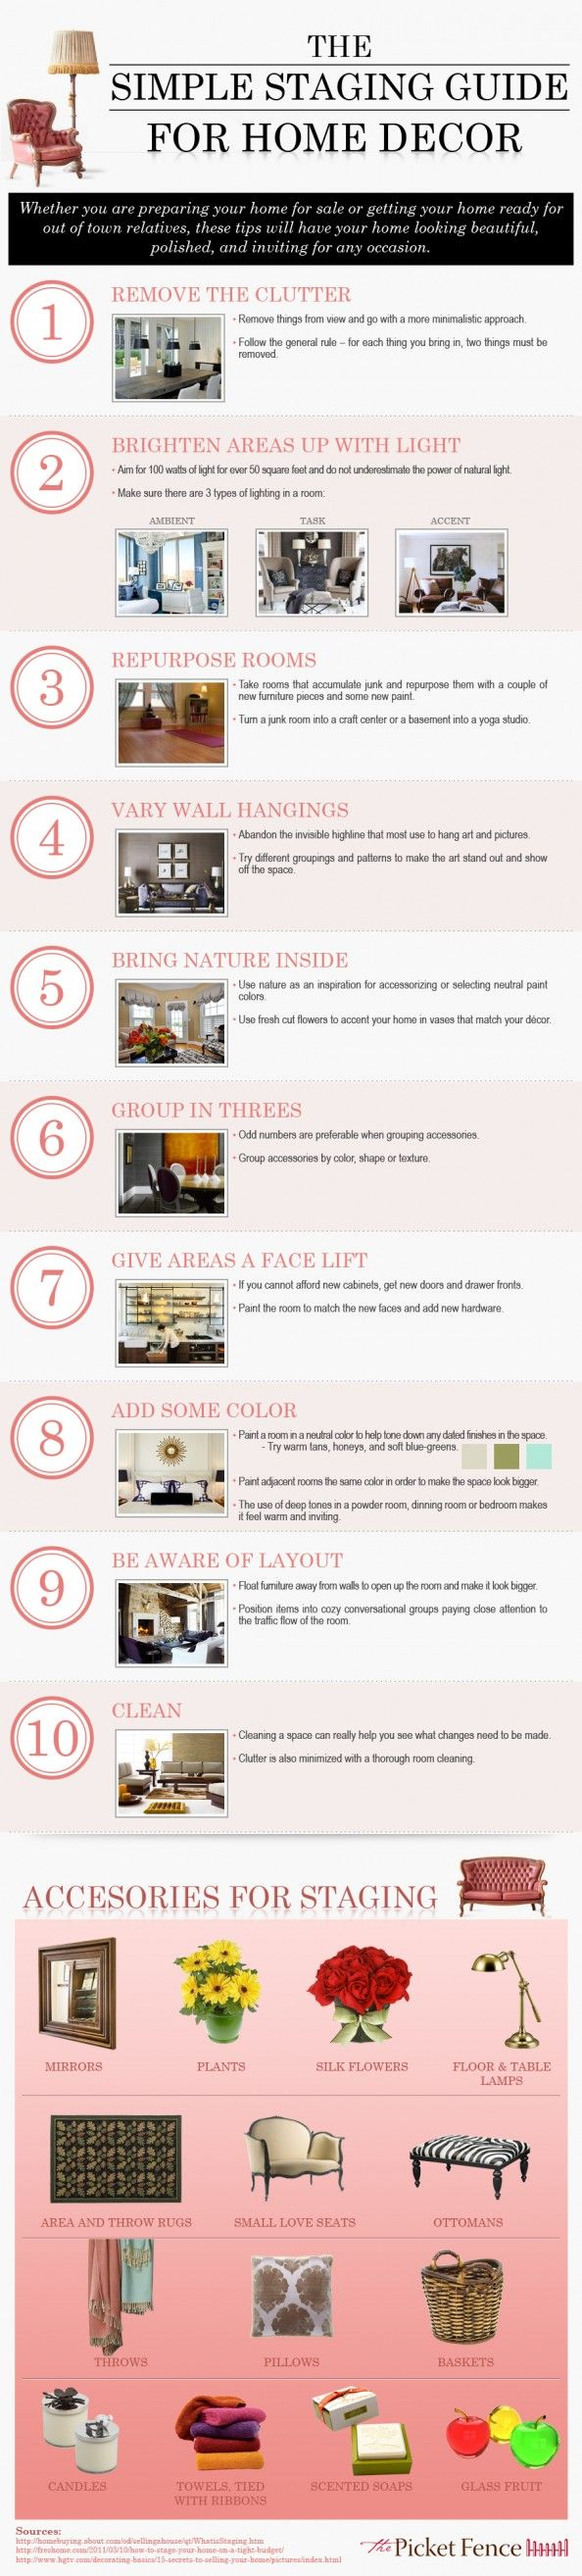 I once had a friend that told me that our houses should look always as good as they do when we are trying to sell them. The Simple Staging Guide for Home Decor Infographic